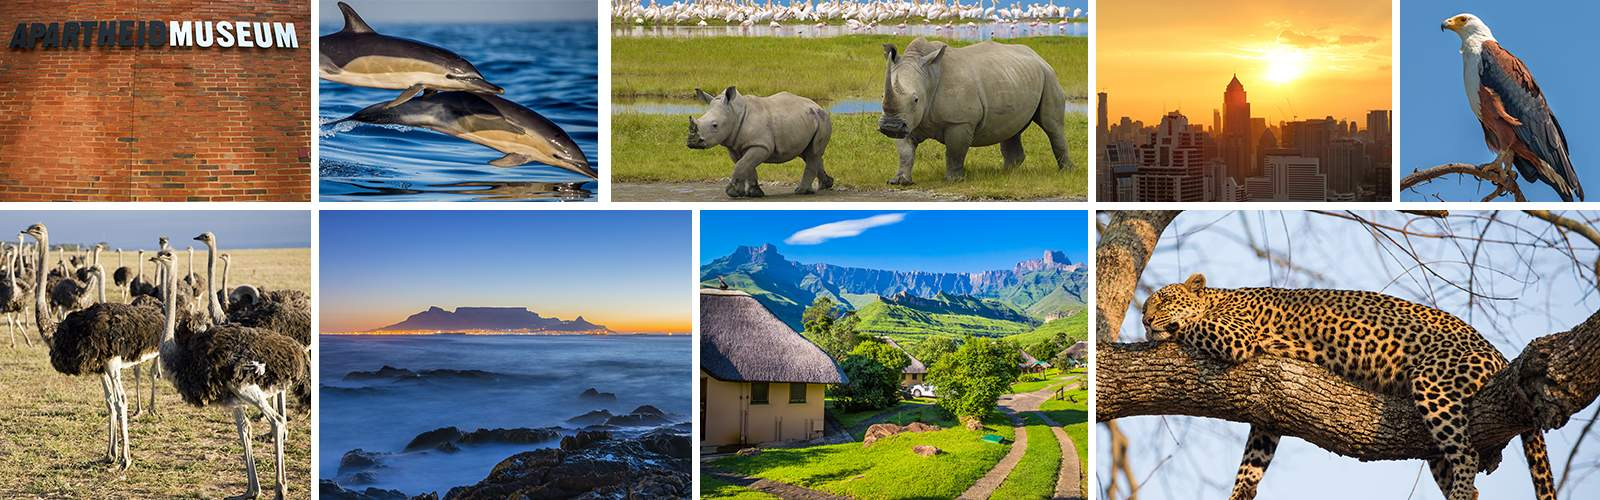 Wendy Wu Tours South Africa Holidays